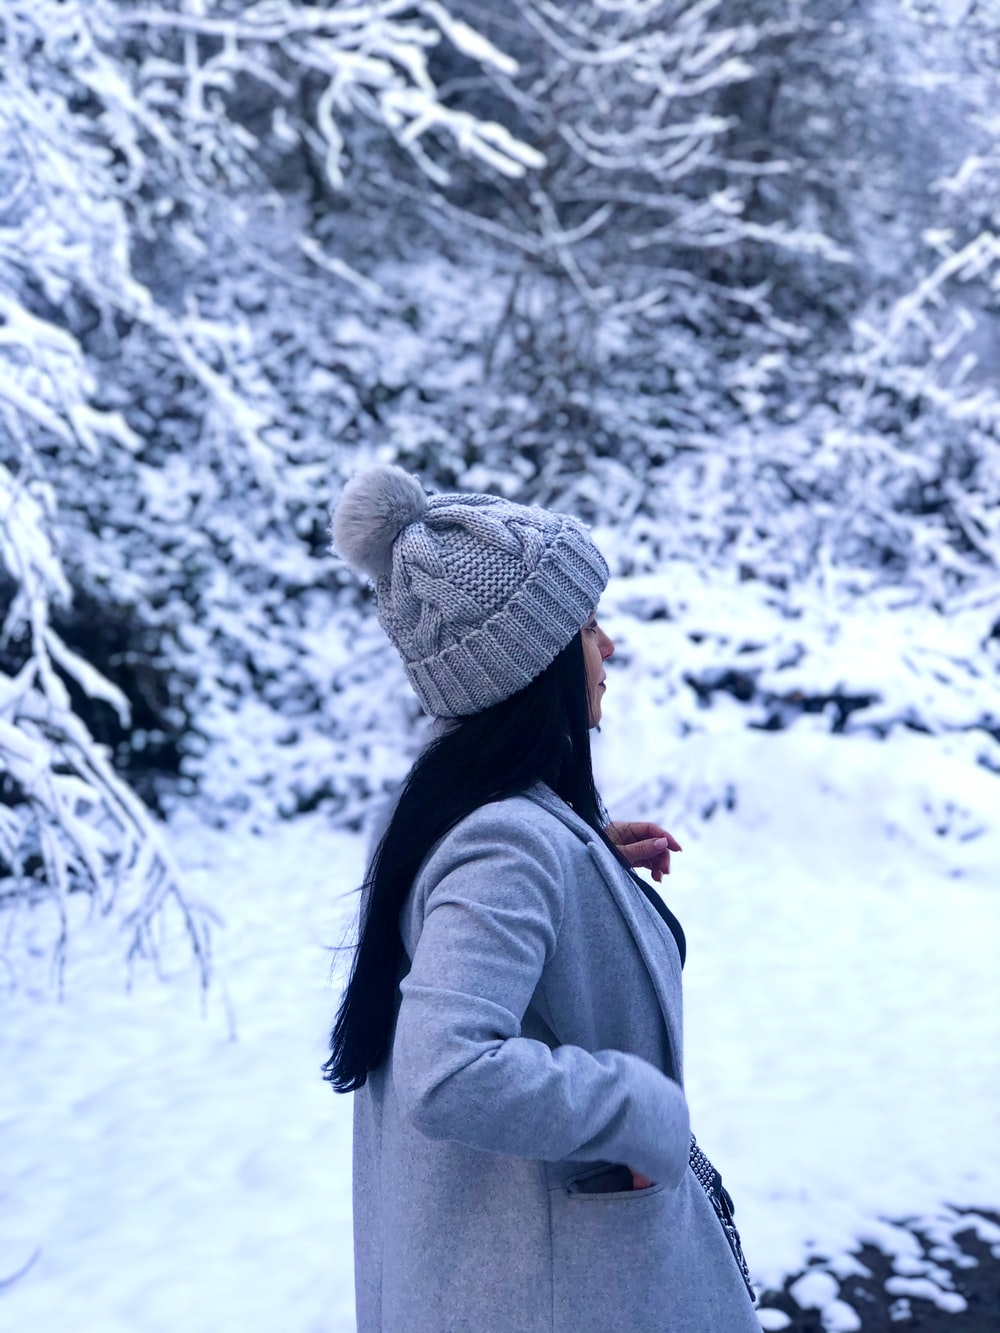 woman in gray jacket and white knit cap standing on snow covered ground during daytime